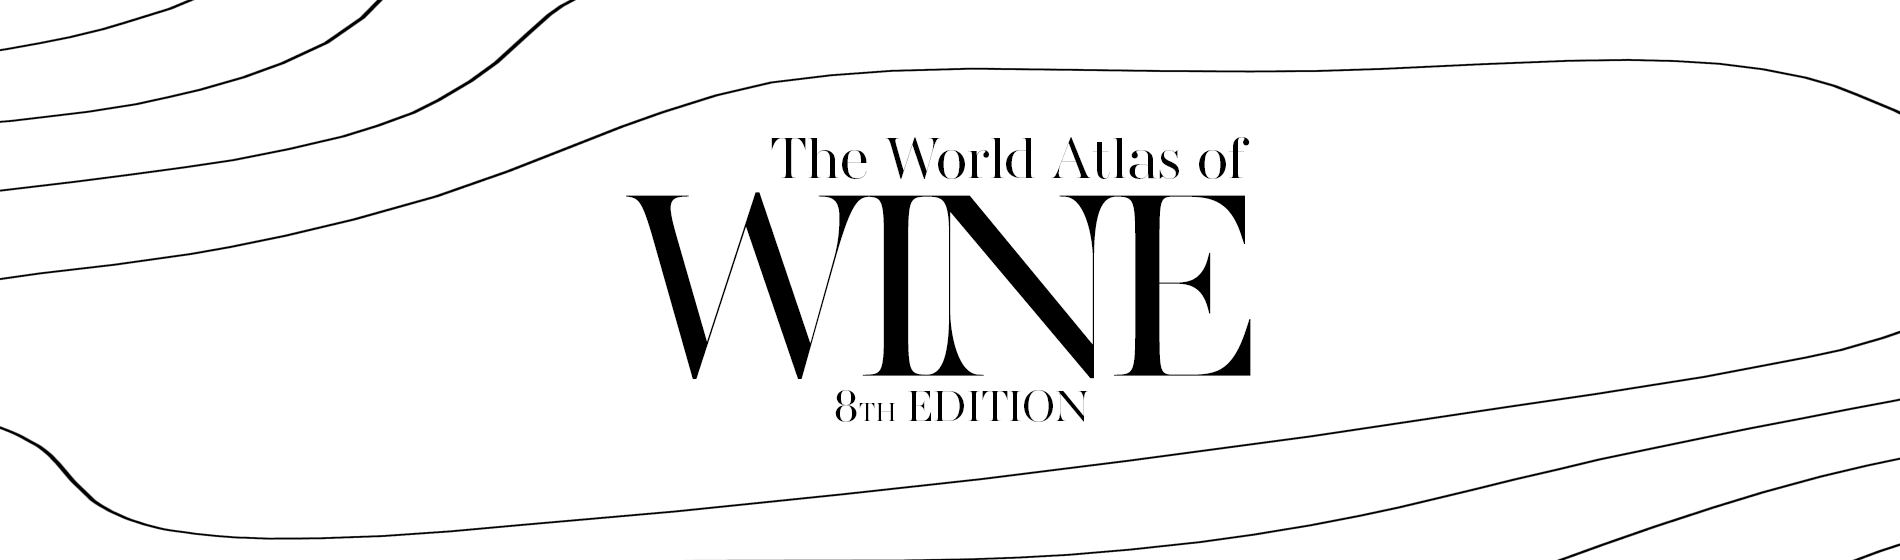 World Atlas Of Wine The Home Of Lifestyle Publishing